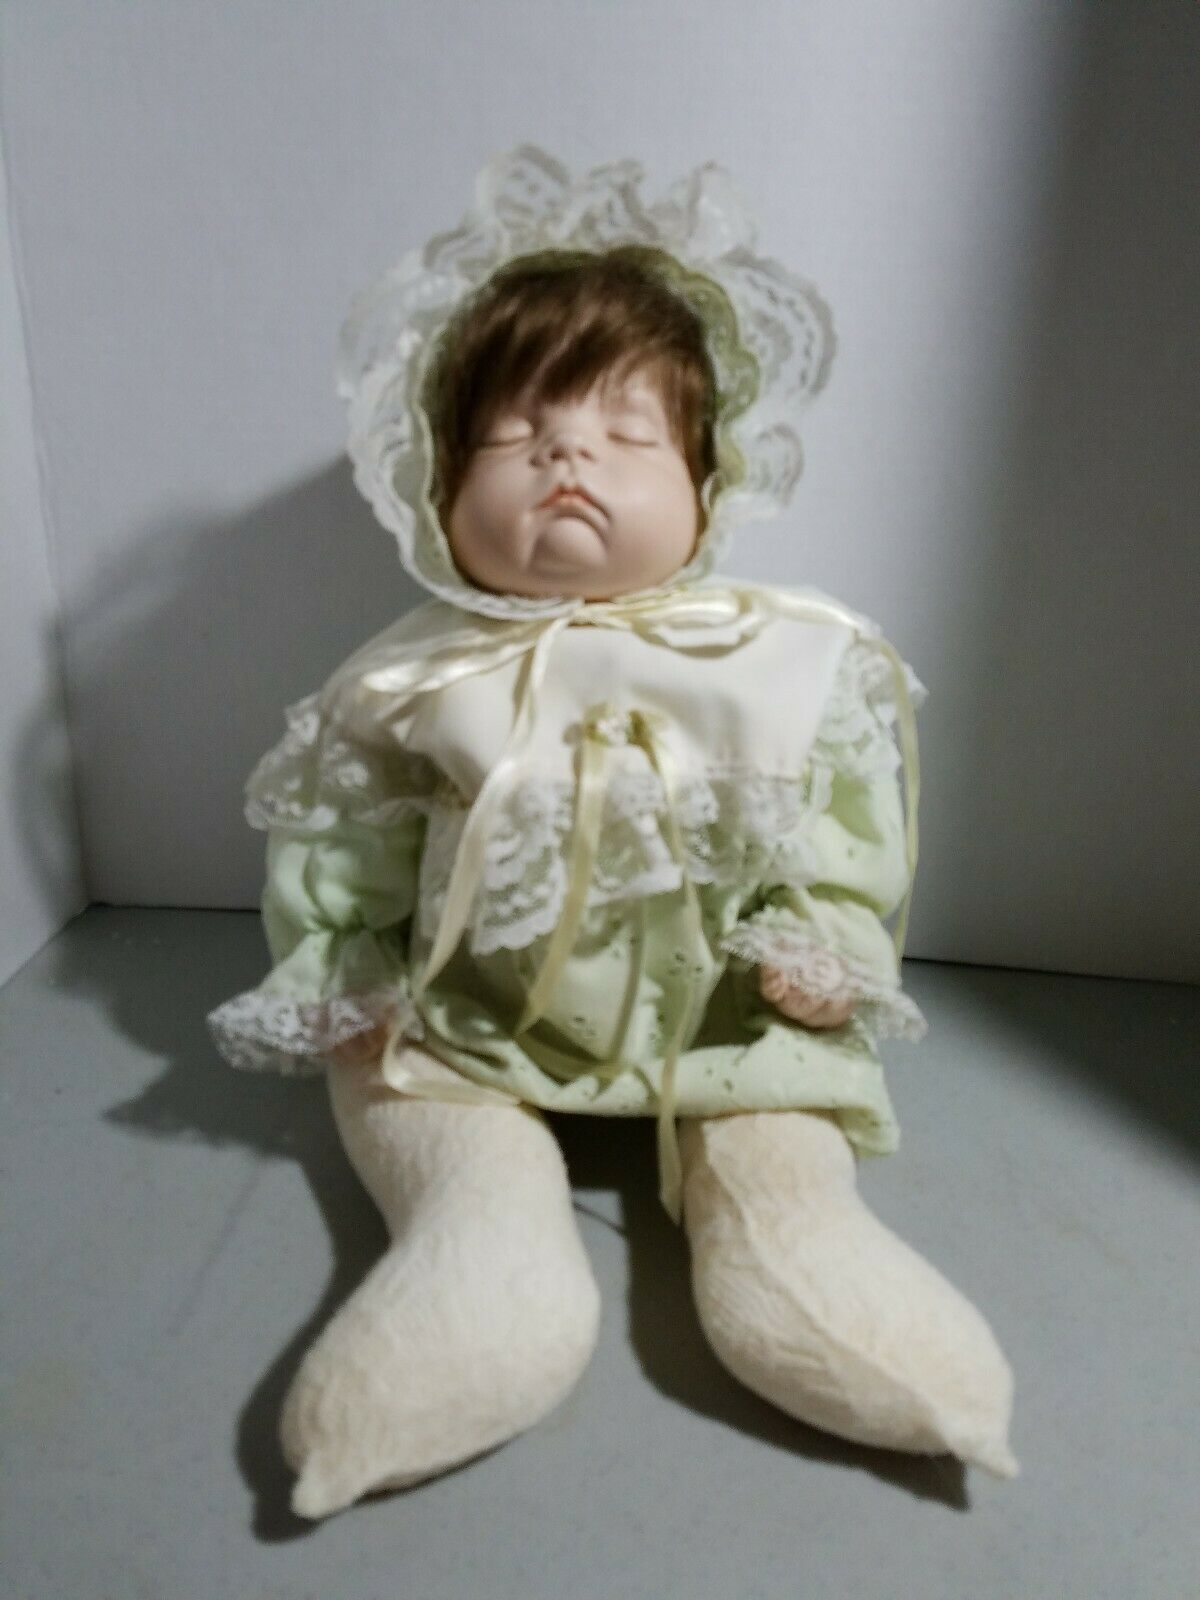 Stiefel Tyner 1996 Sugar Britches Porcelain Baby 19  Doll sleeping signed Myrna